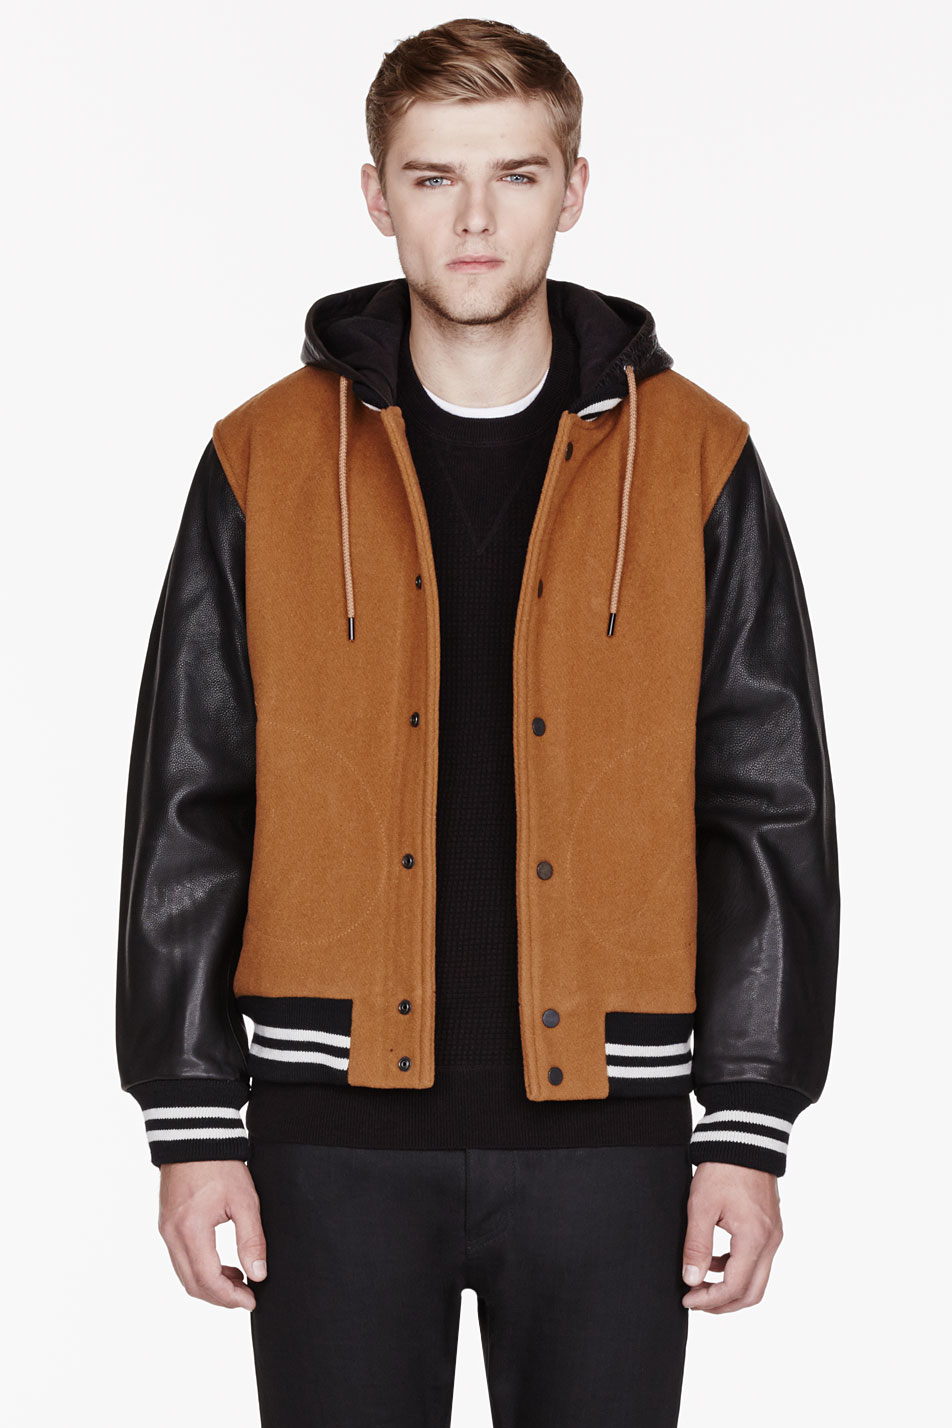 Brown leather varsity jacket – Modern fashion jacket photo blog